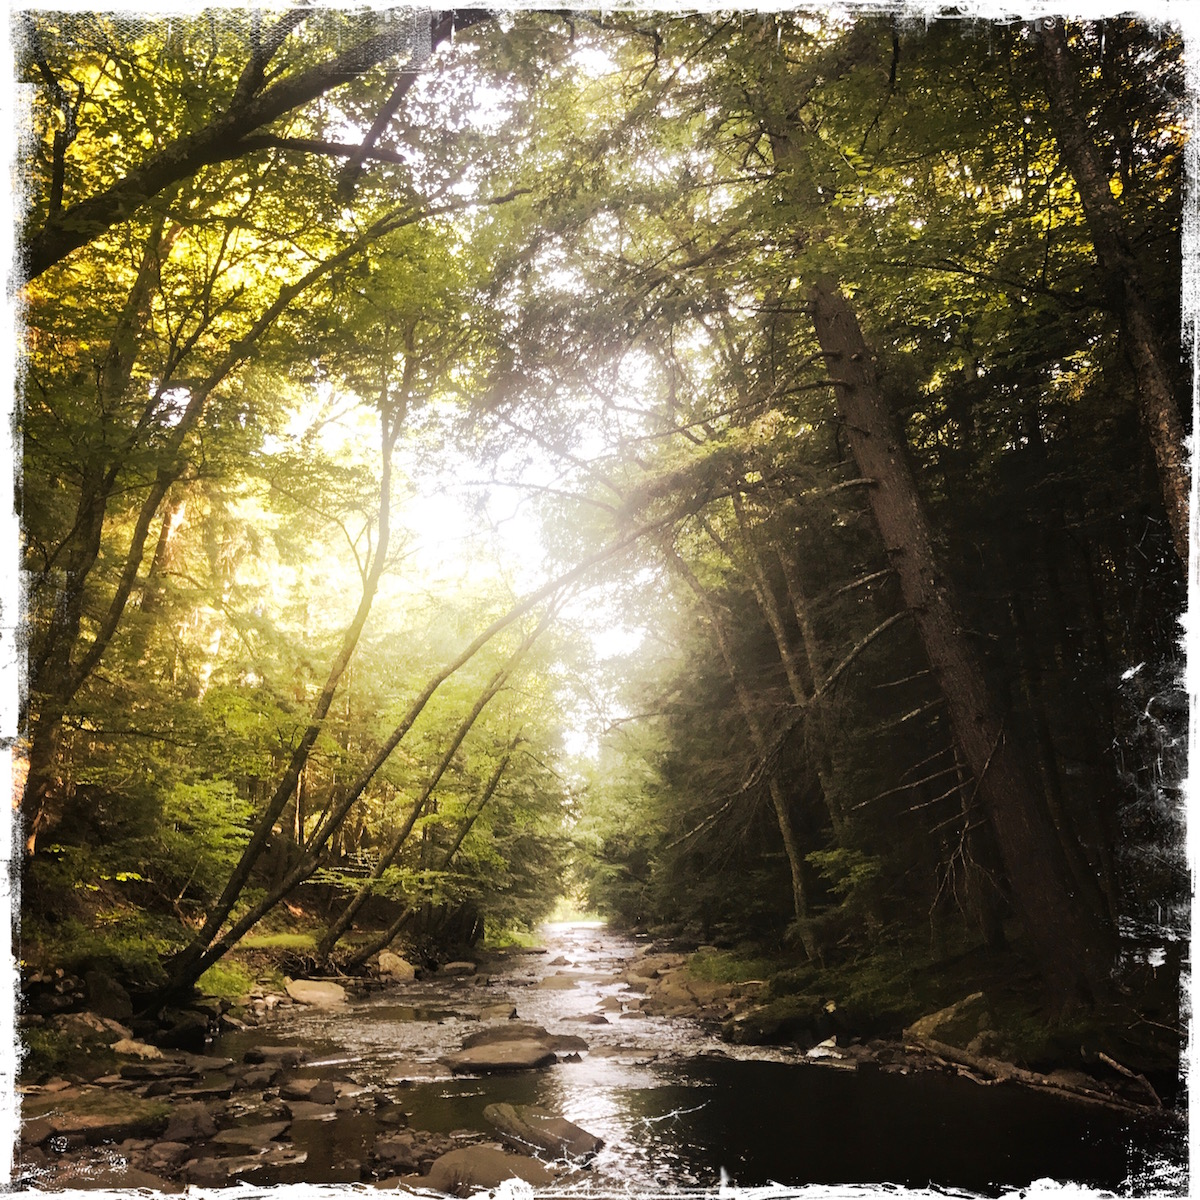 Saskawhihiwine River, Catskills, NY, photo by Barbara Sinclair